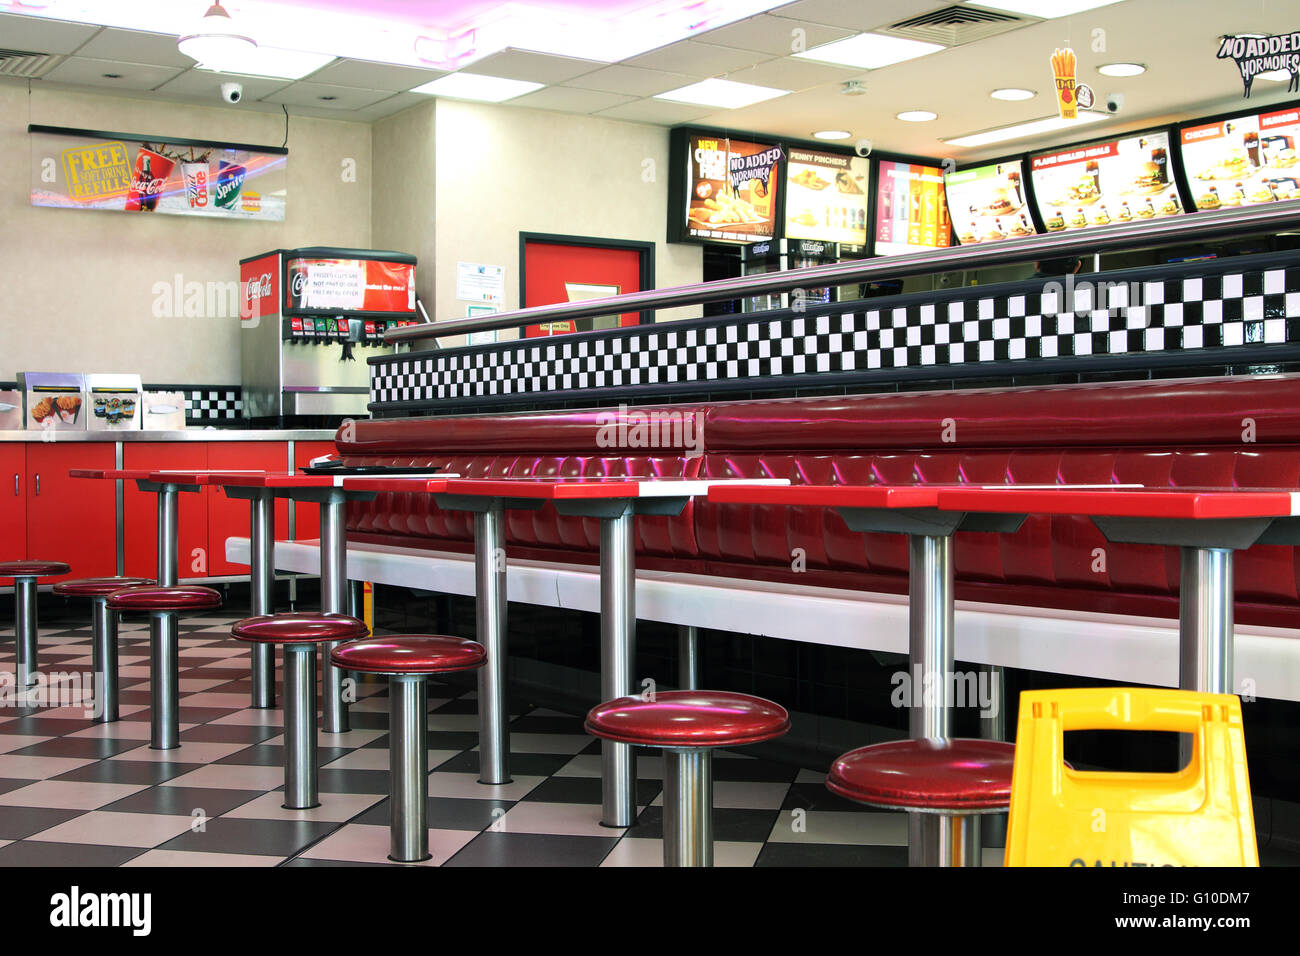 Fast Food Shop Interior High Resolution Stock Photography And Images Alamy